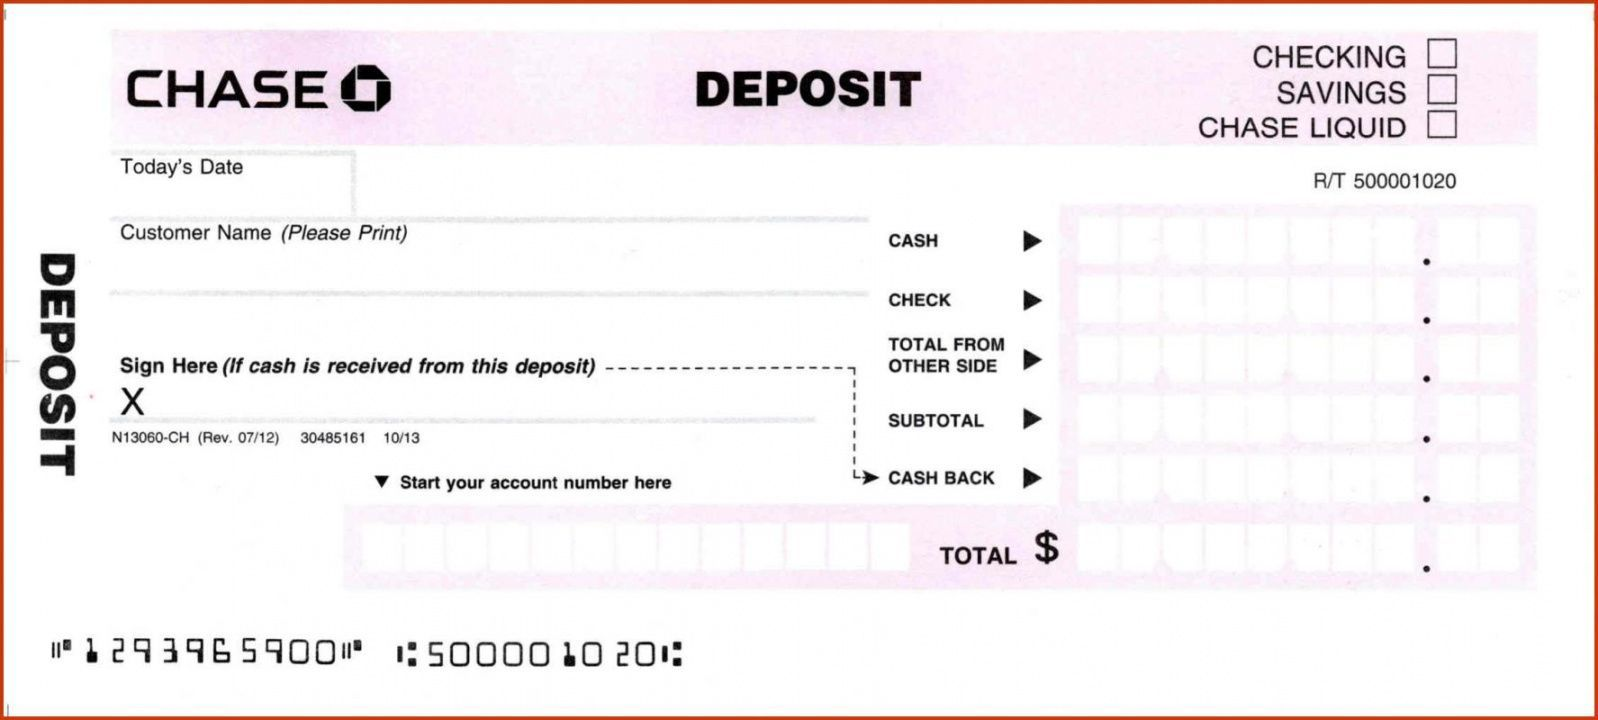 Browse Our Image Of Bank Deposit Slip Template For Free Bank Deposit Deposit Being A Landlord